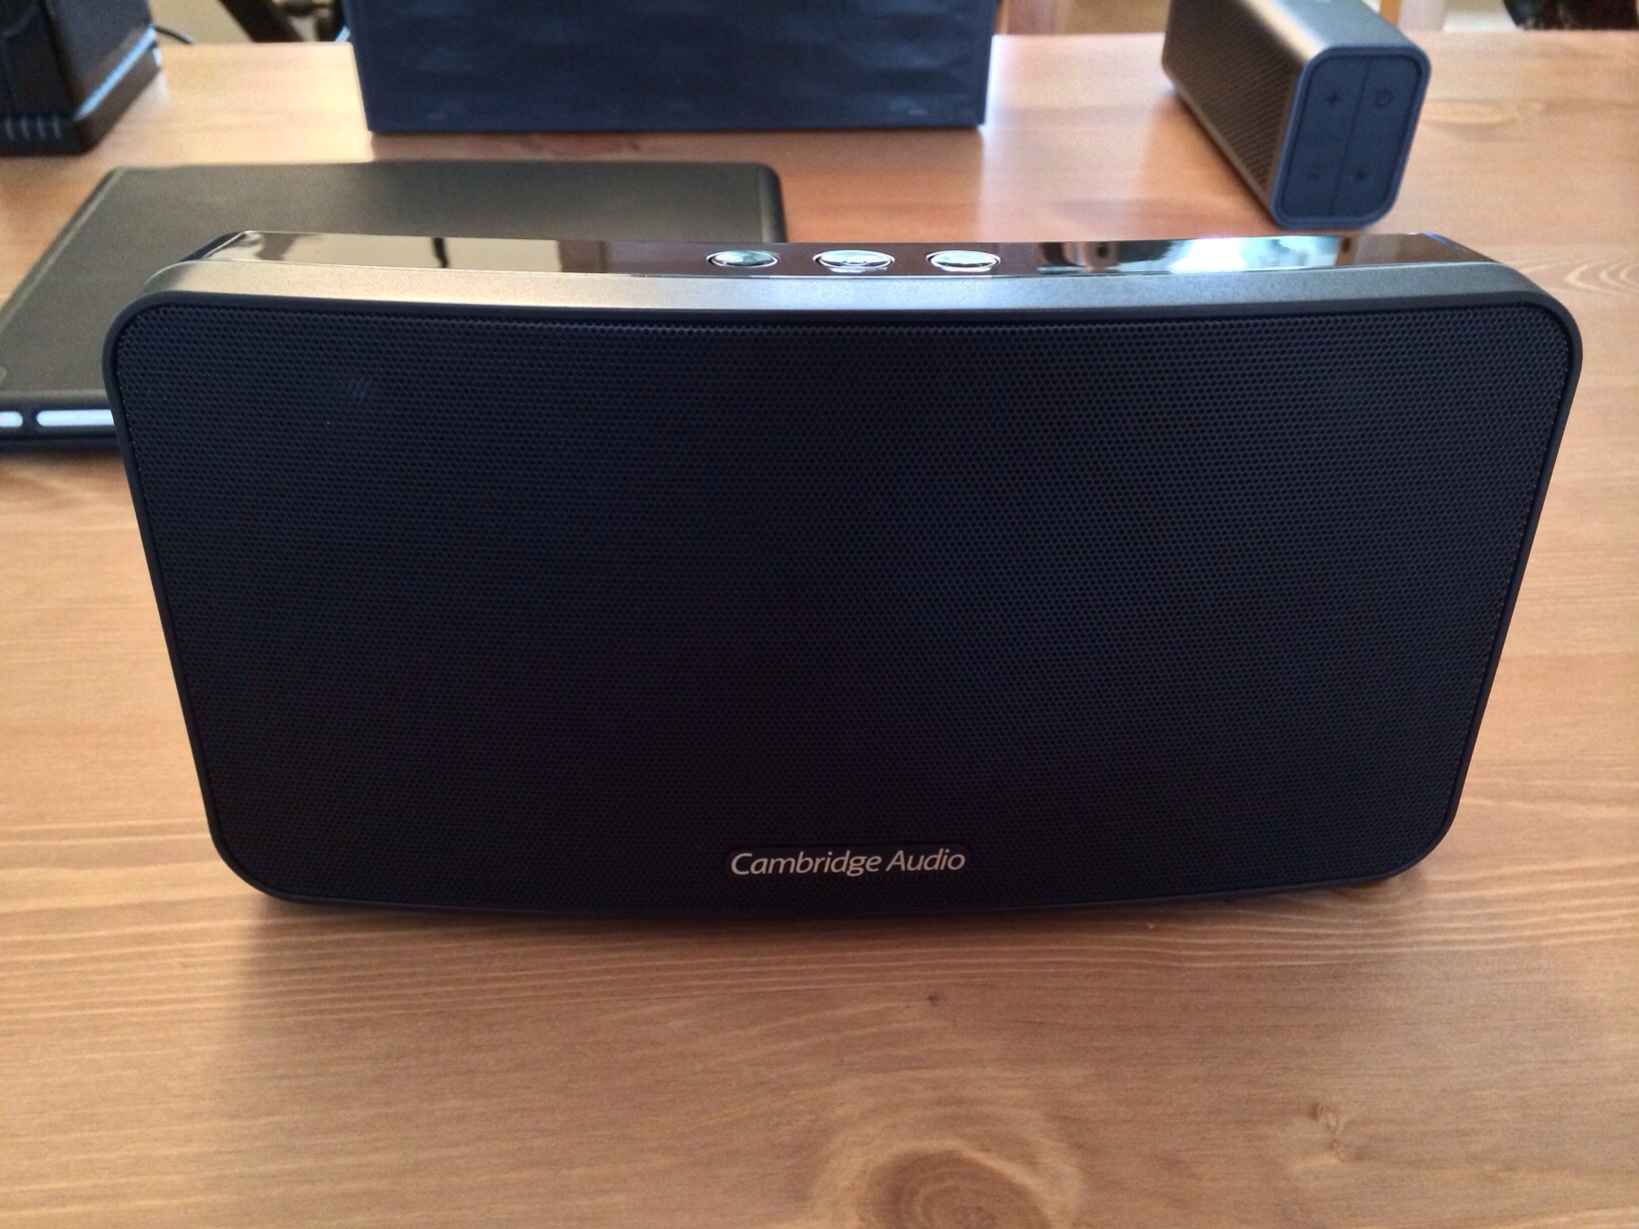 Cambridge Audio's Minx Go Is A Portable Wireless Speaker That's Almost Perfect